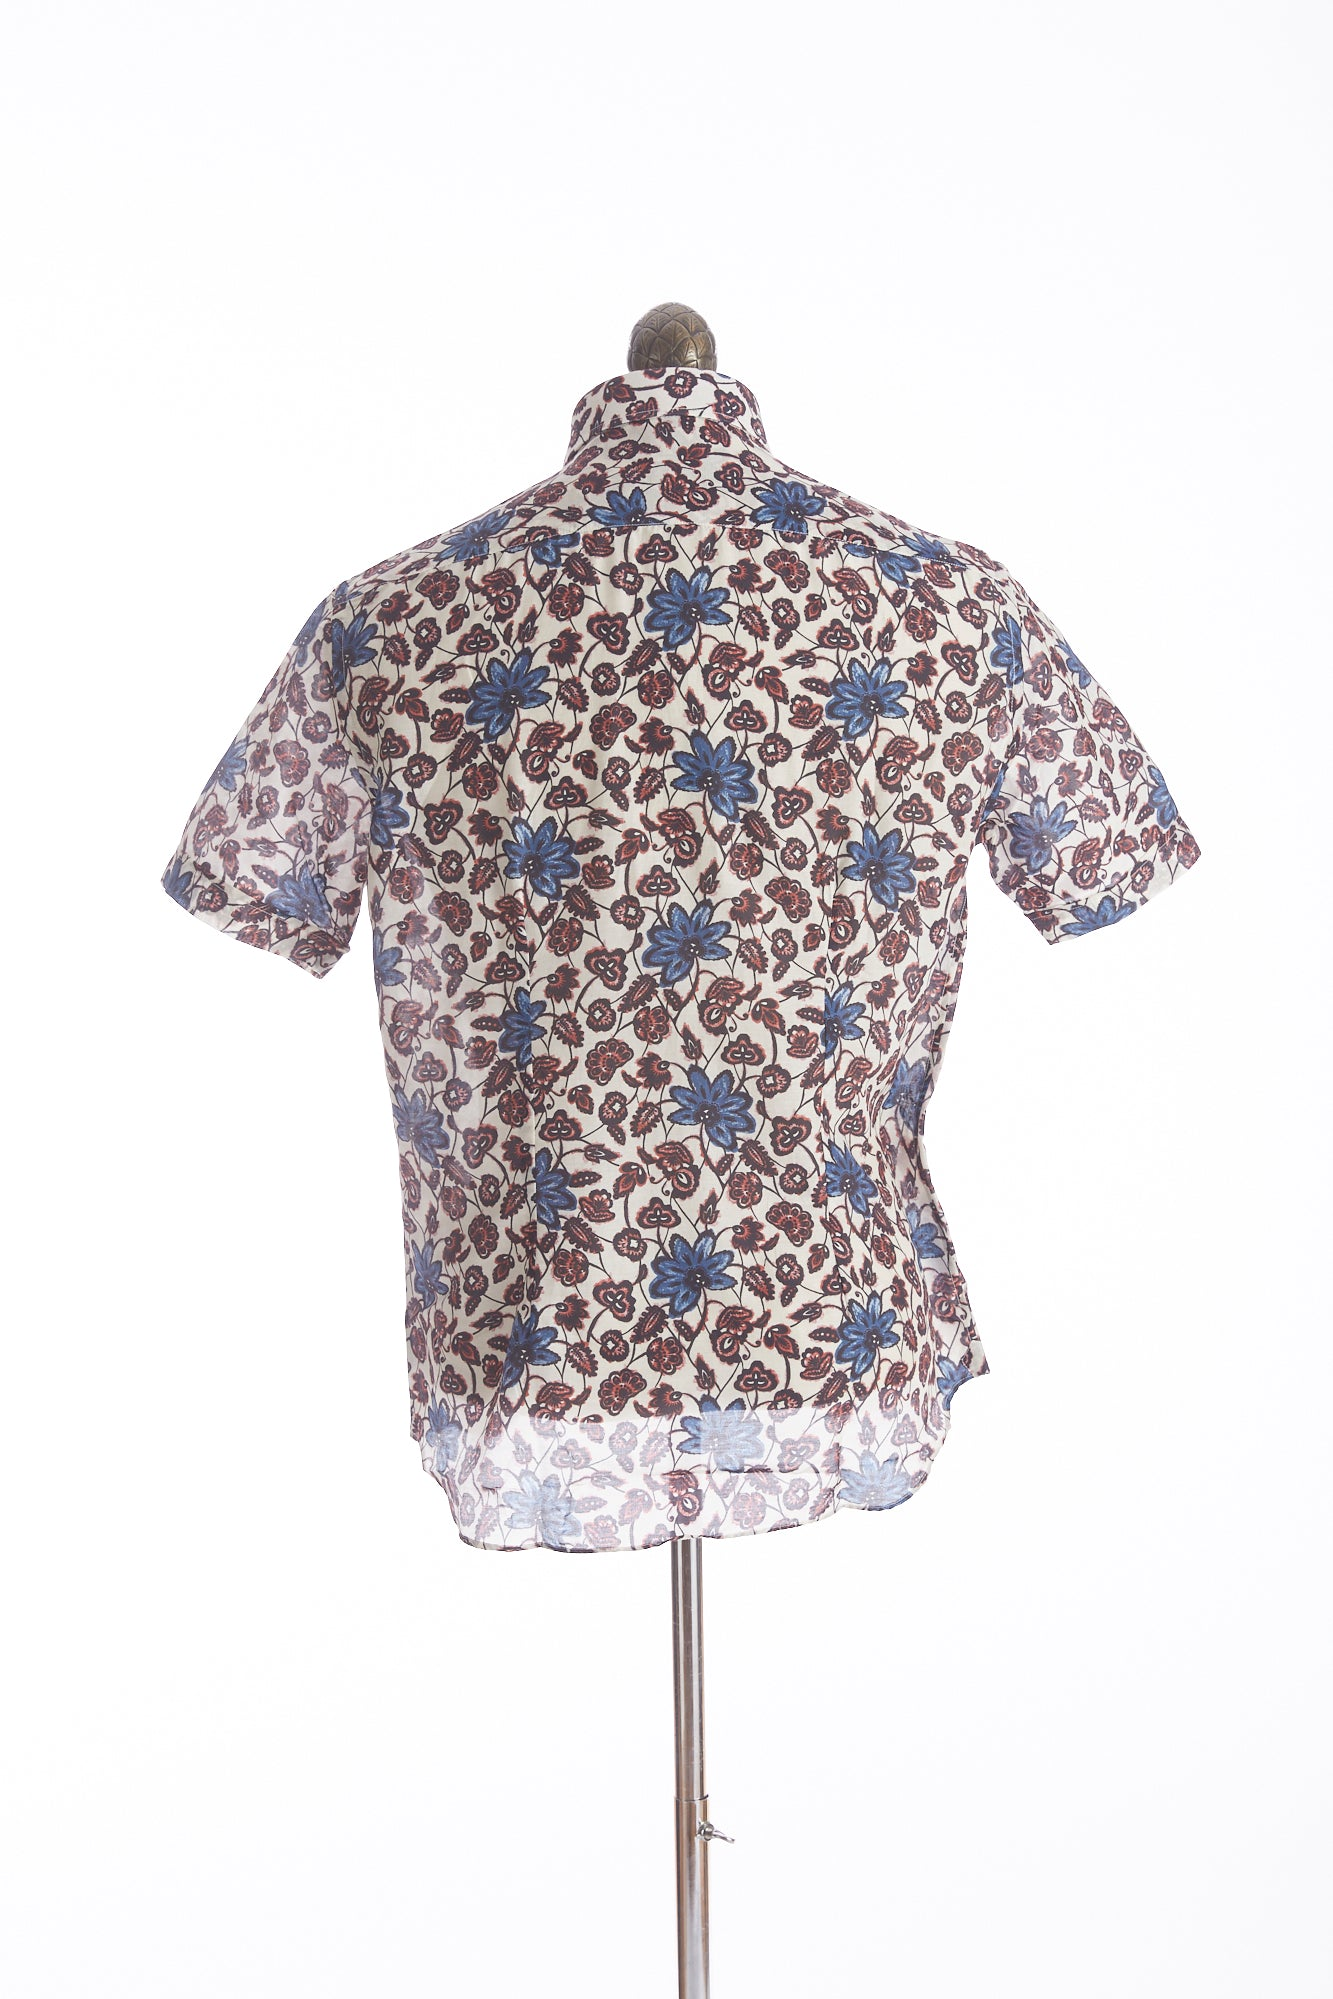 Culturata Abstract Floral Print Short Sleeve Shirt - Shirts - Culturata - LALONDE's